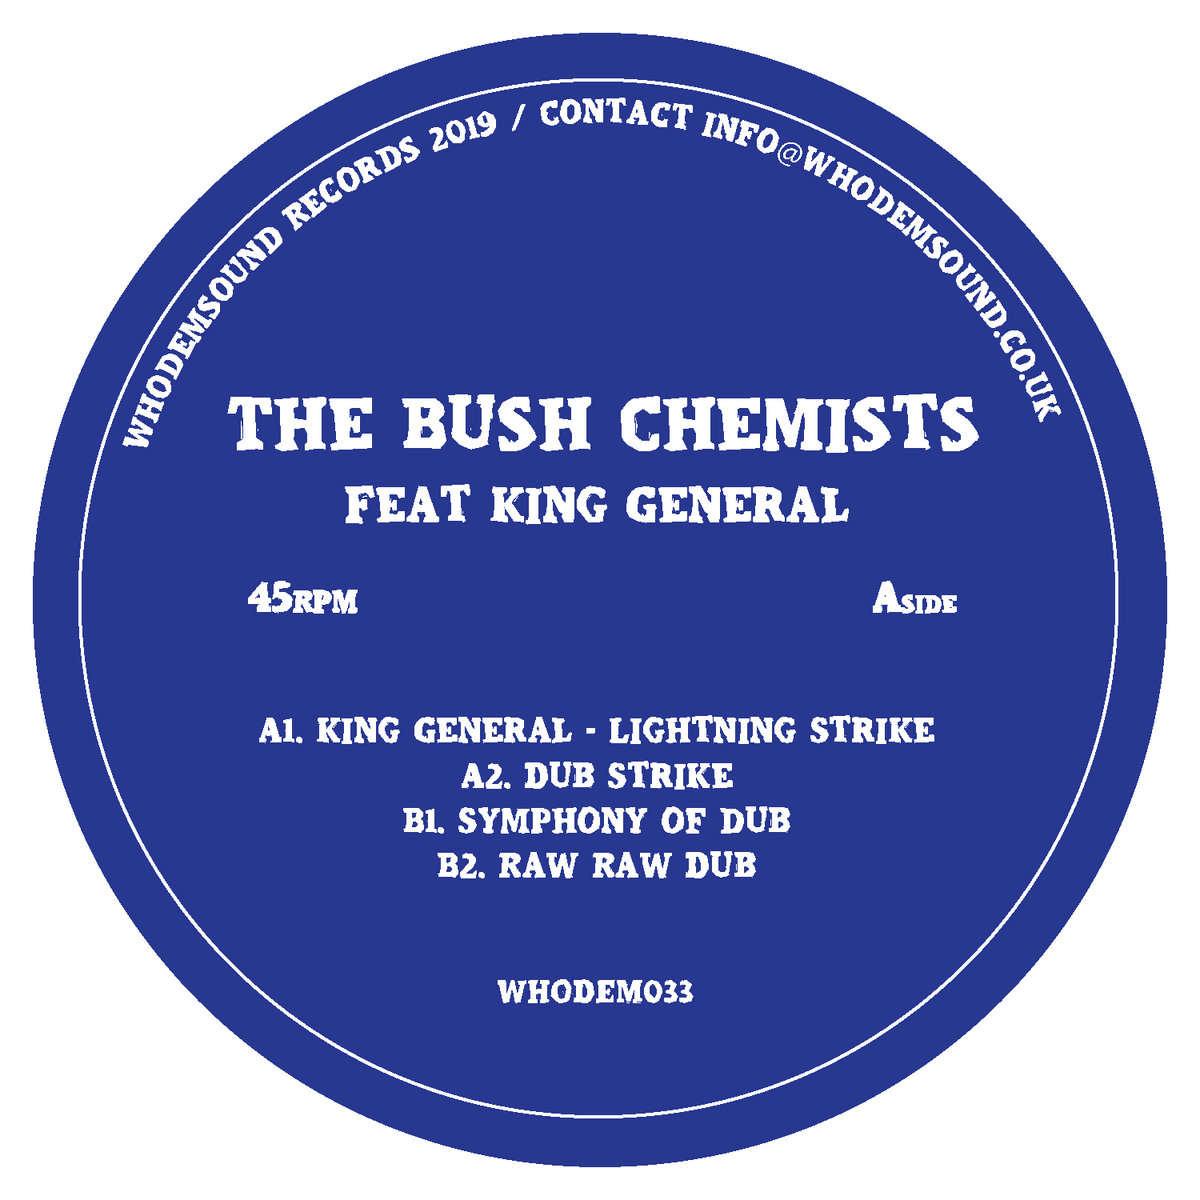 WHODEM033 The Bush Chemists / King General 12'' (Vinyl Only